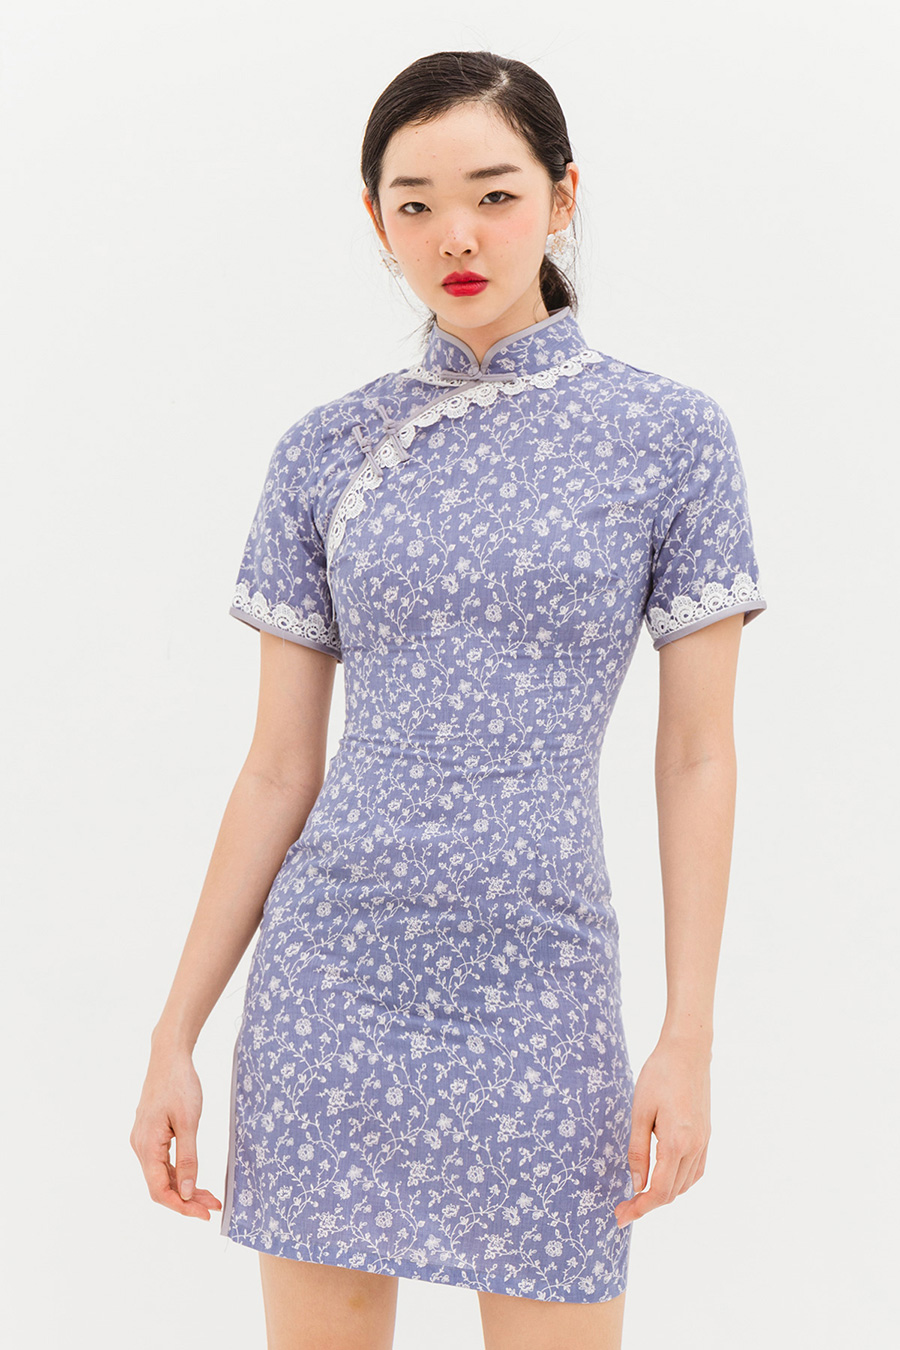 *RESTOCKED* YUE DRESS - LAKE BLUE